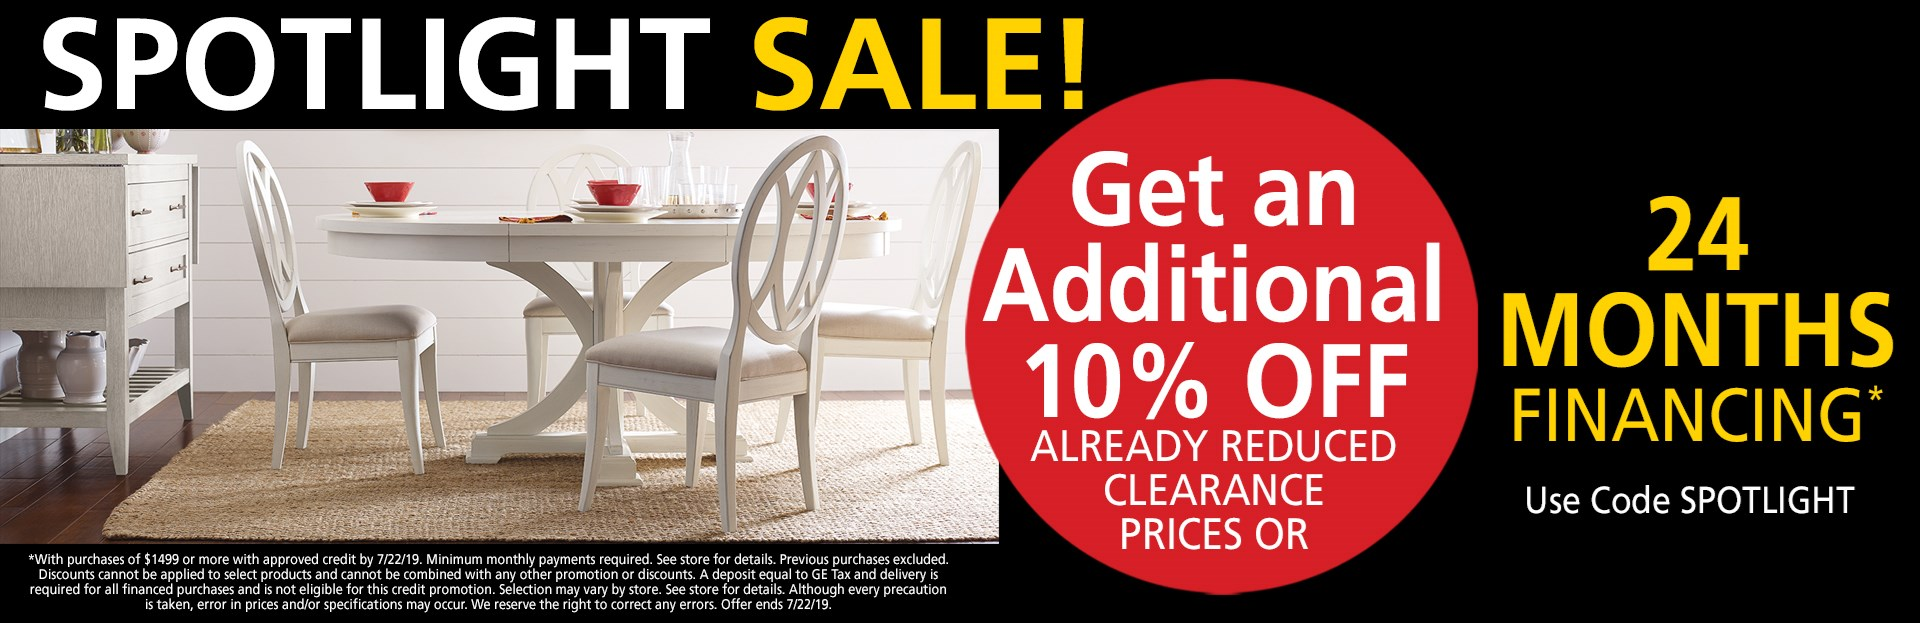 Additional 10% off clearance items or ask about 24 months financing; see store for details.